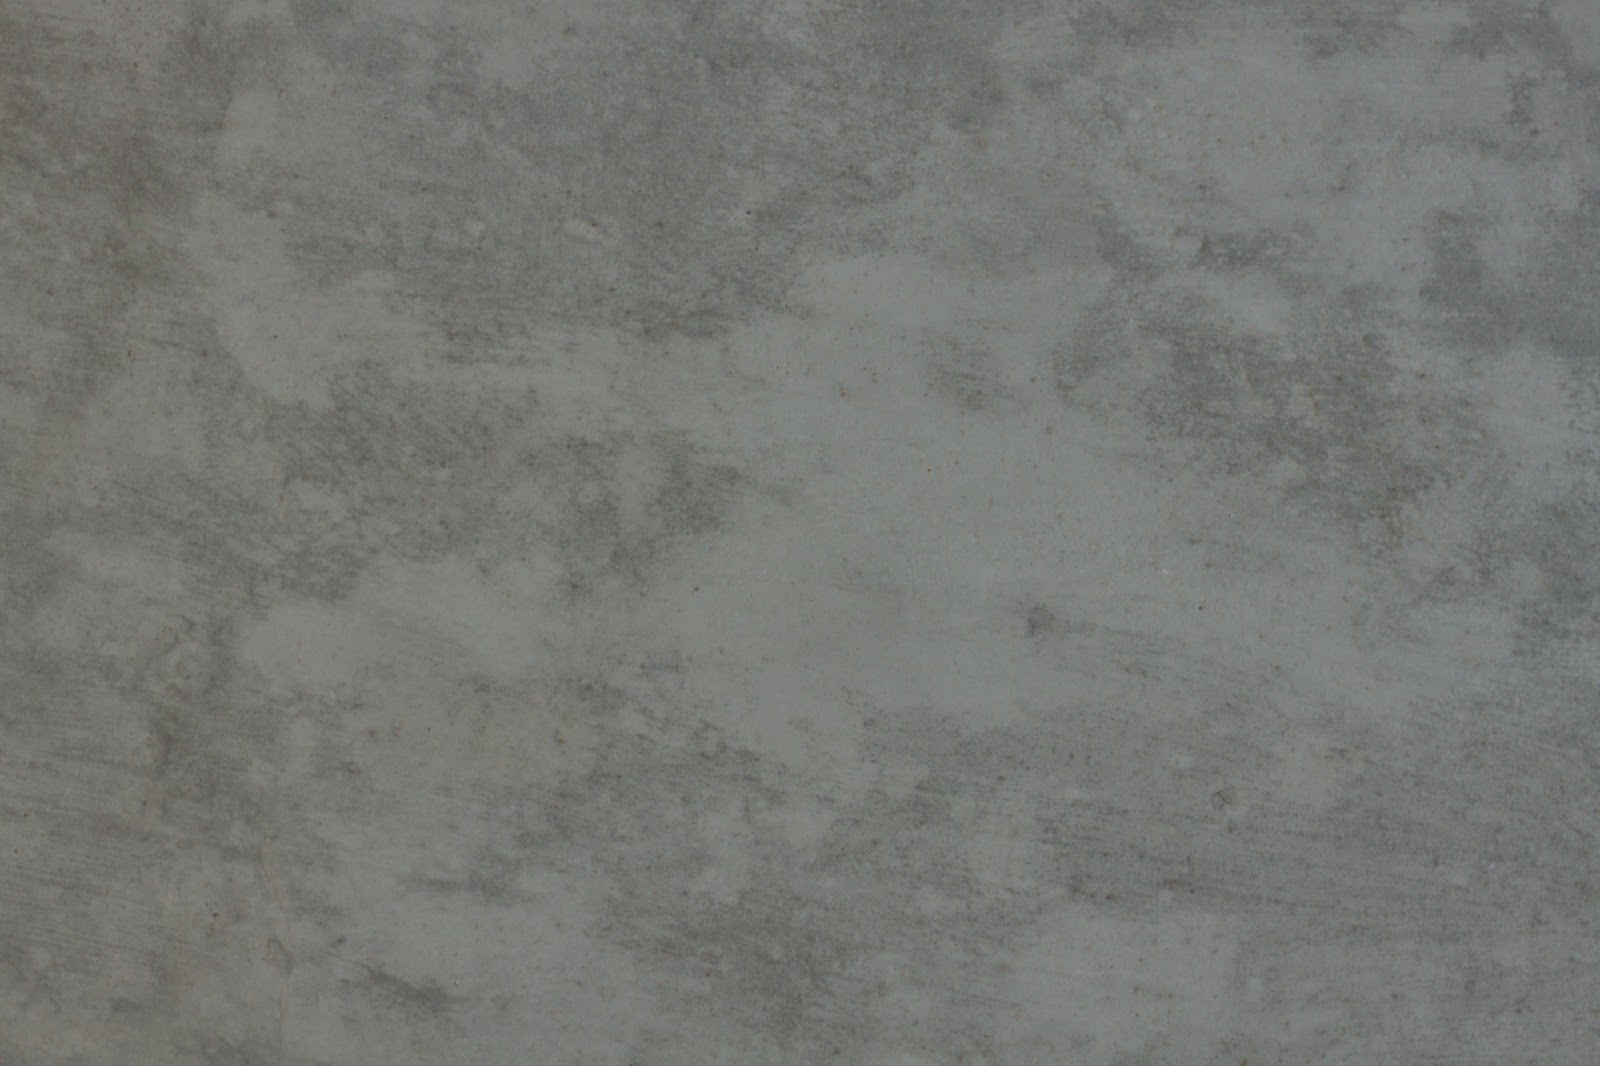 Polished Concrete Floor Texture Seamless High Resolution